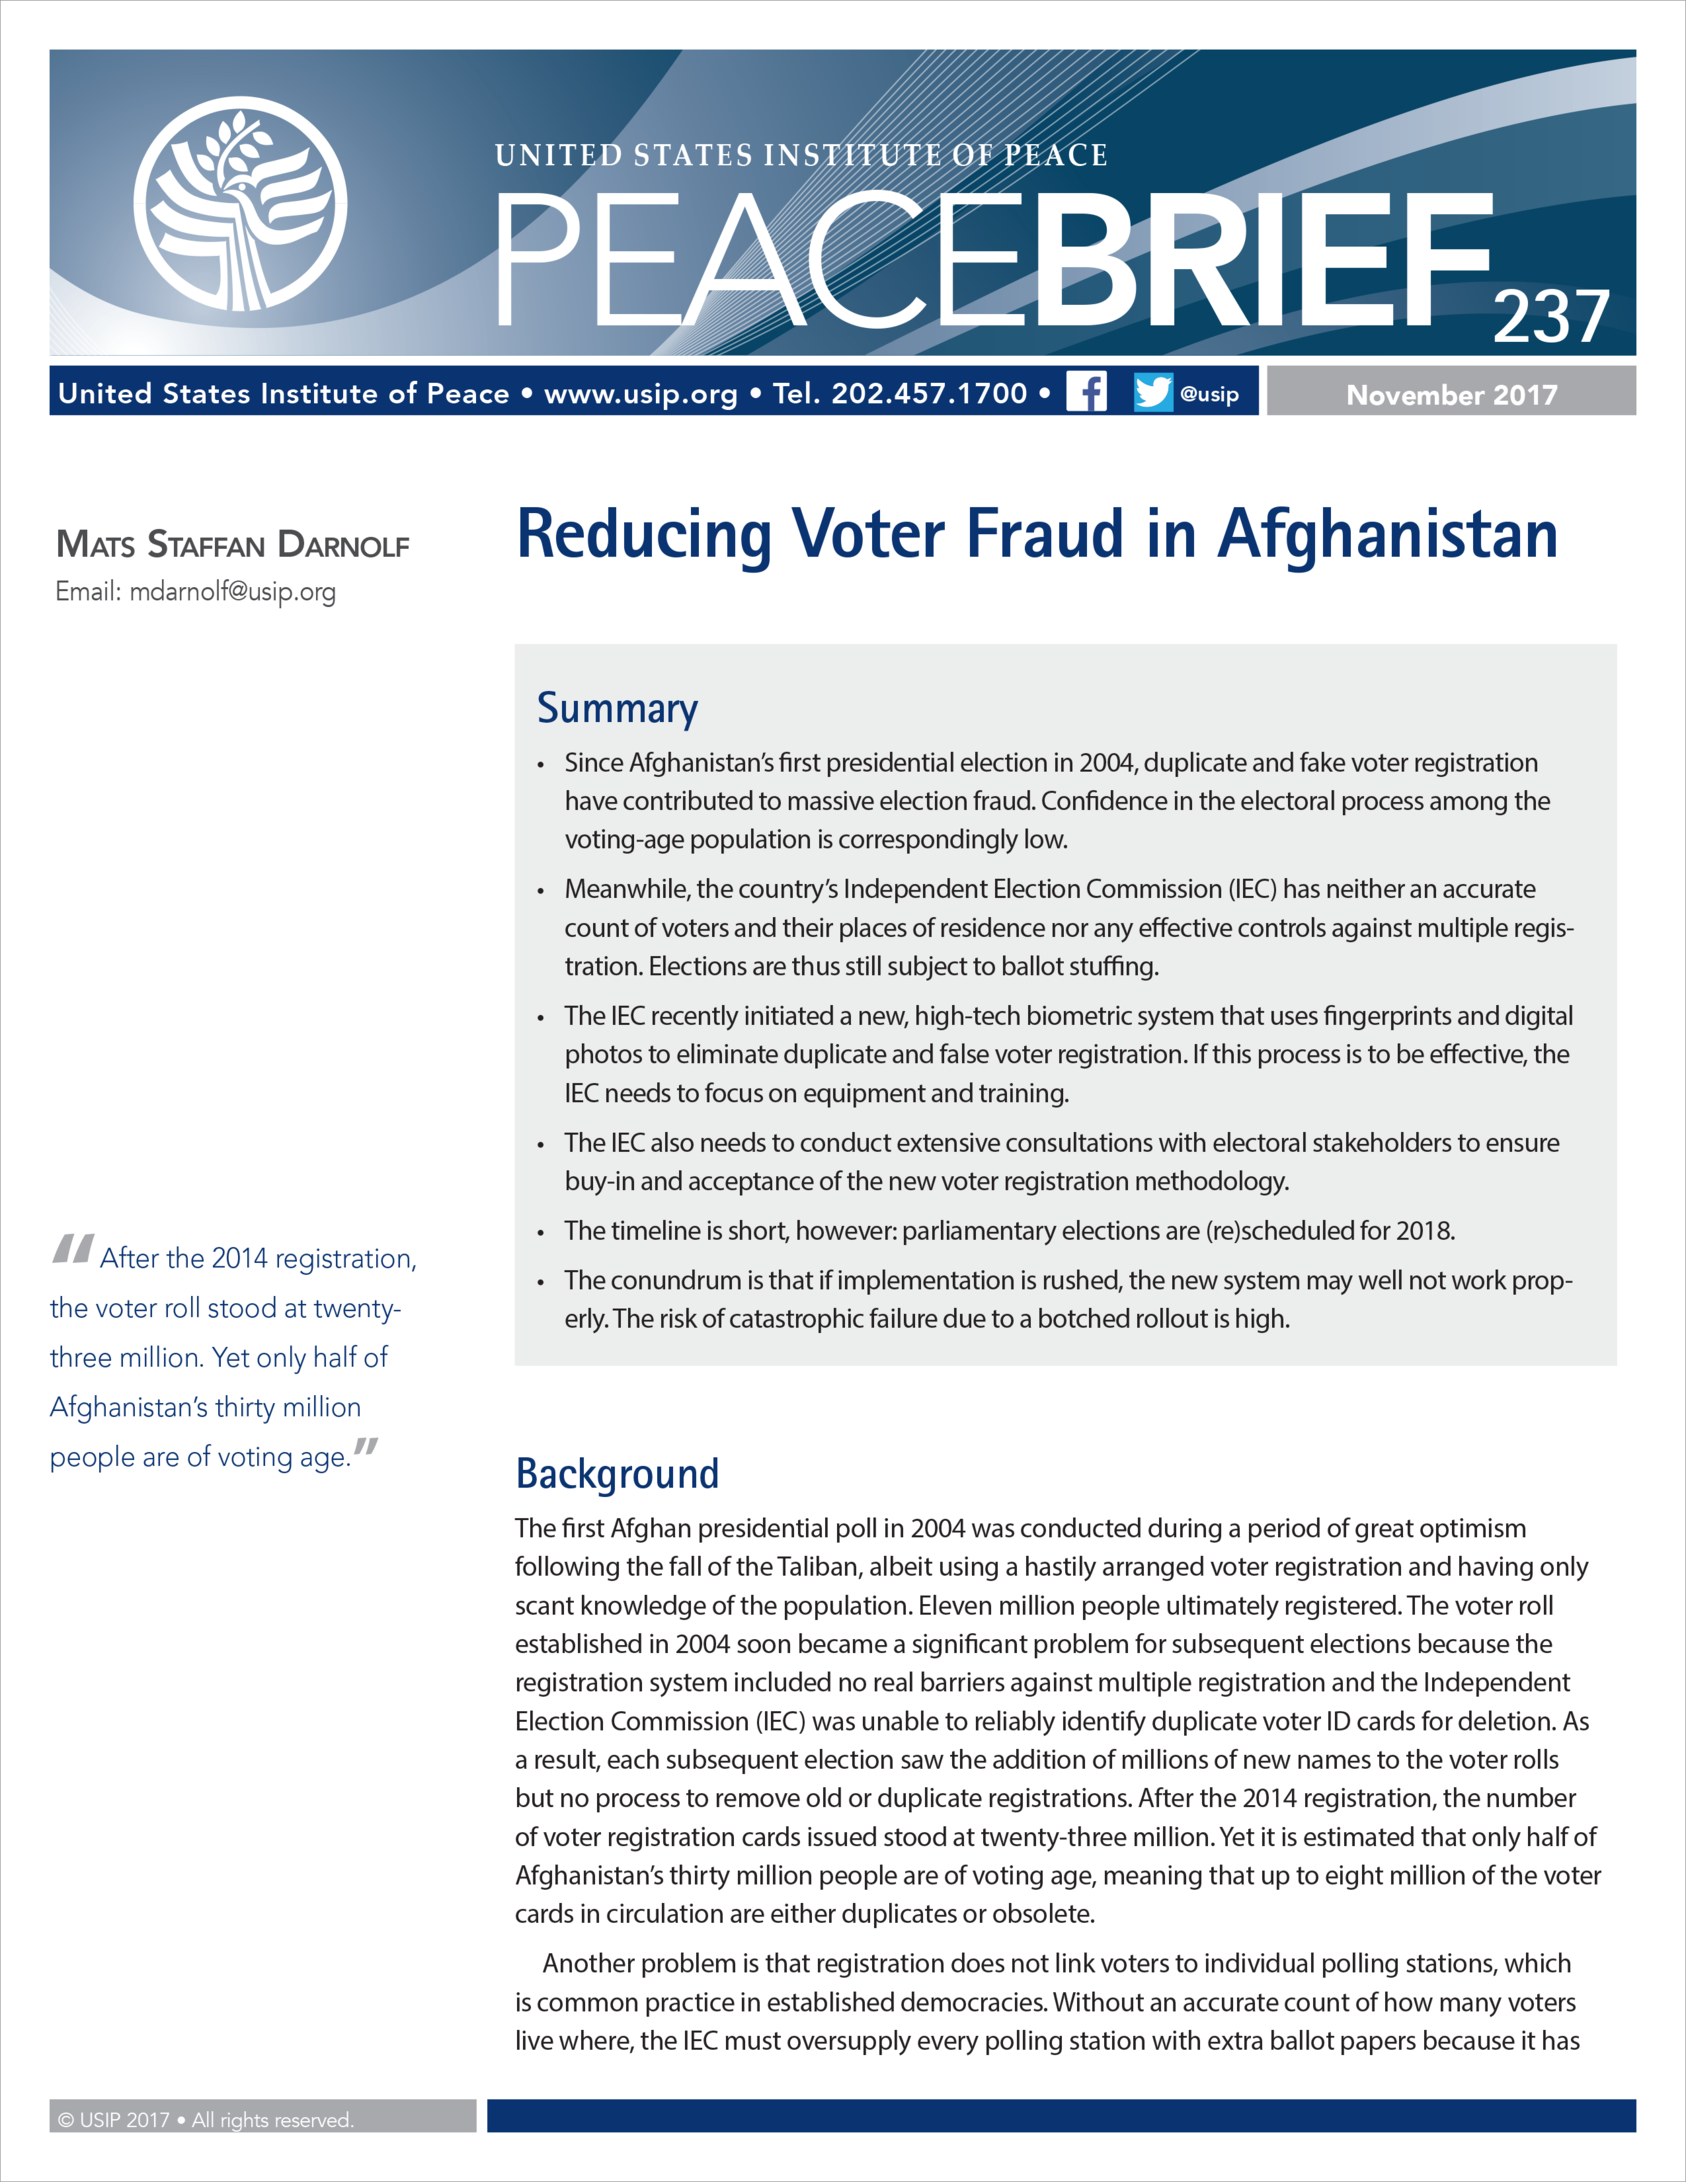 Reducing Voter Fraud in Afghanistan | United States